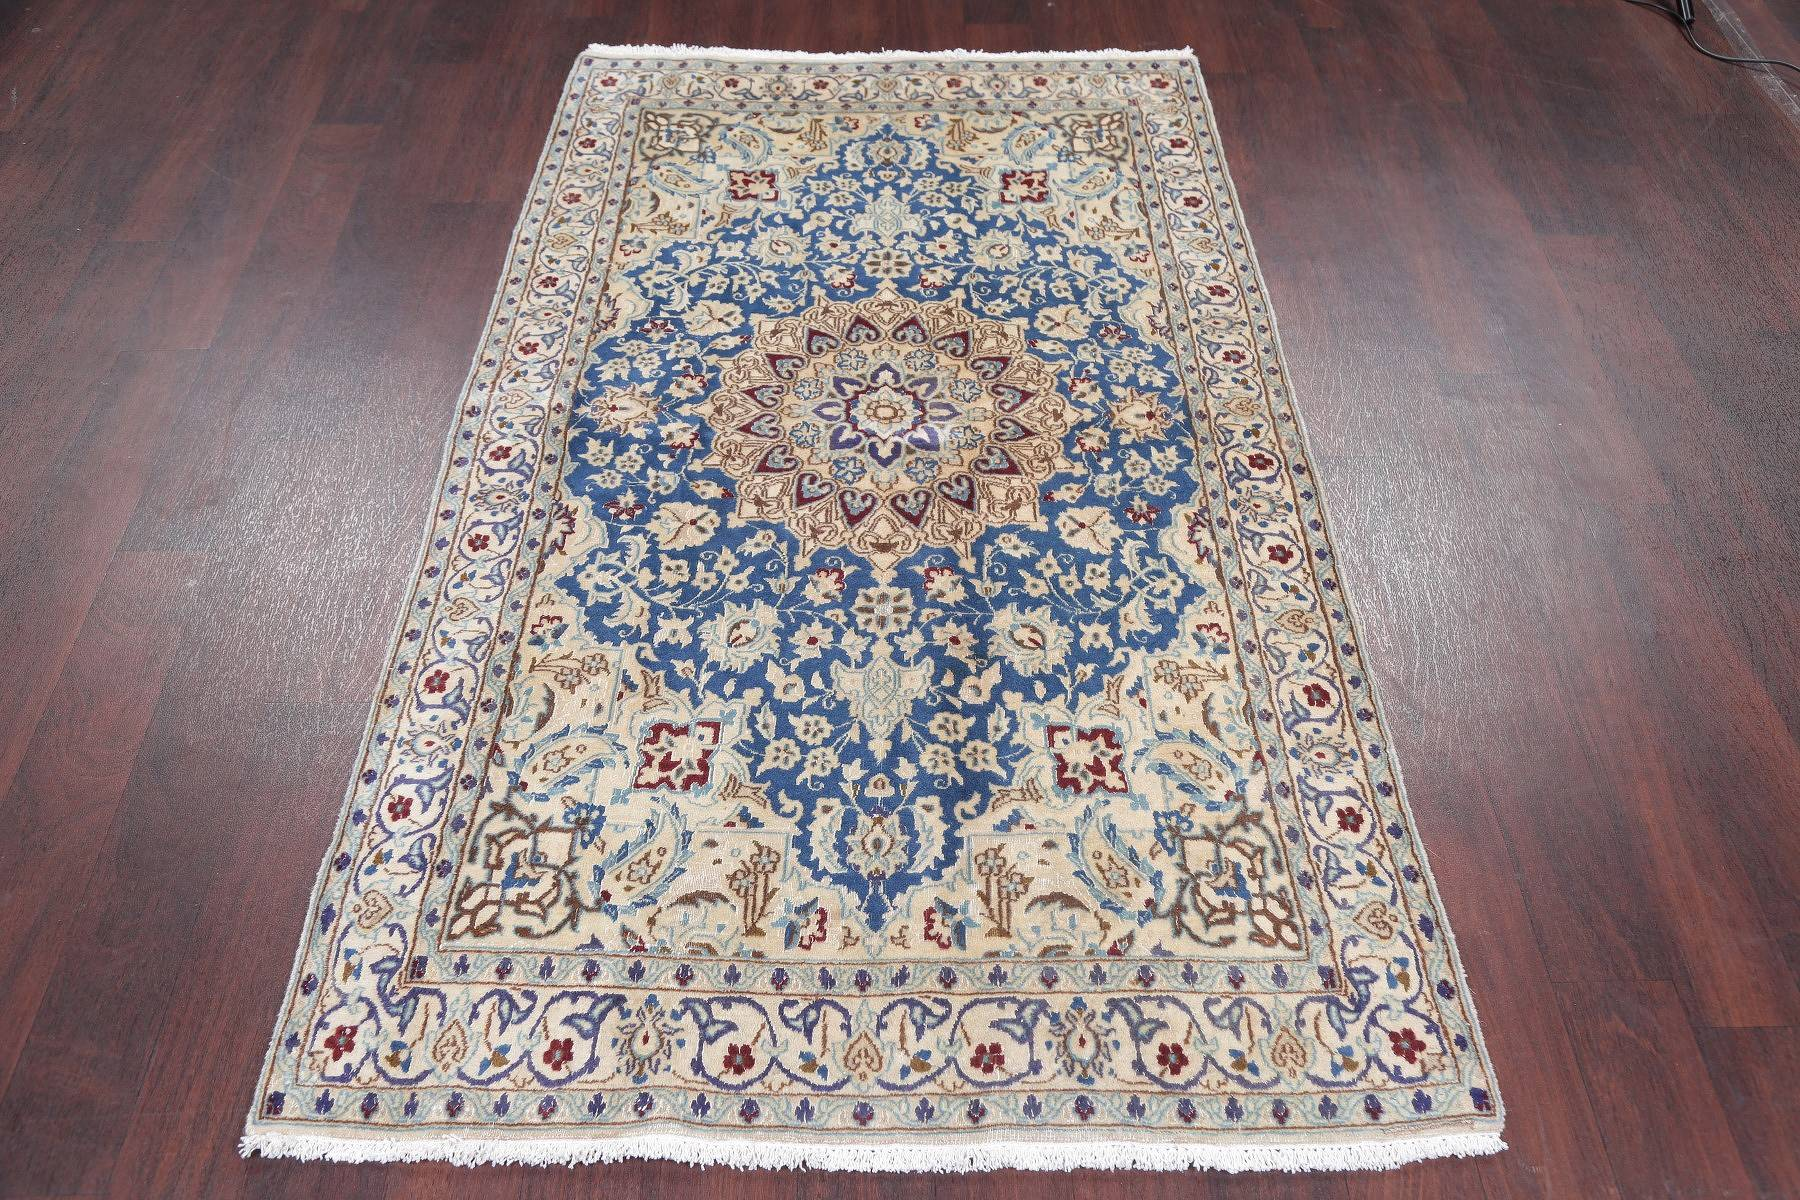 Antique Floral Nain Persian Hand-Knotted 4x7 Light Blue Wool Area Rug